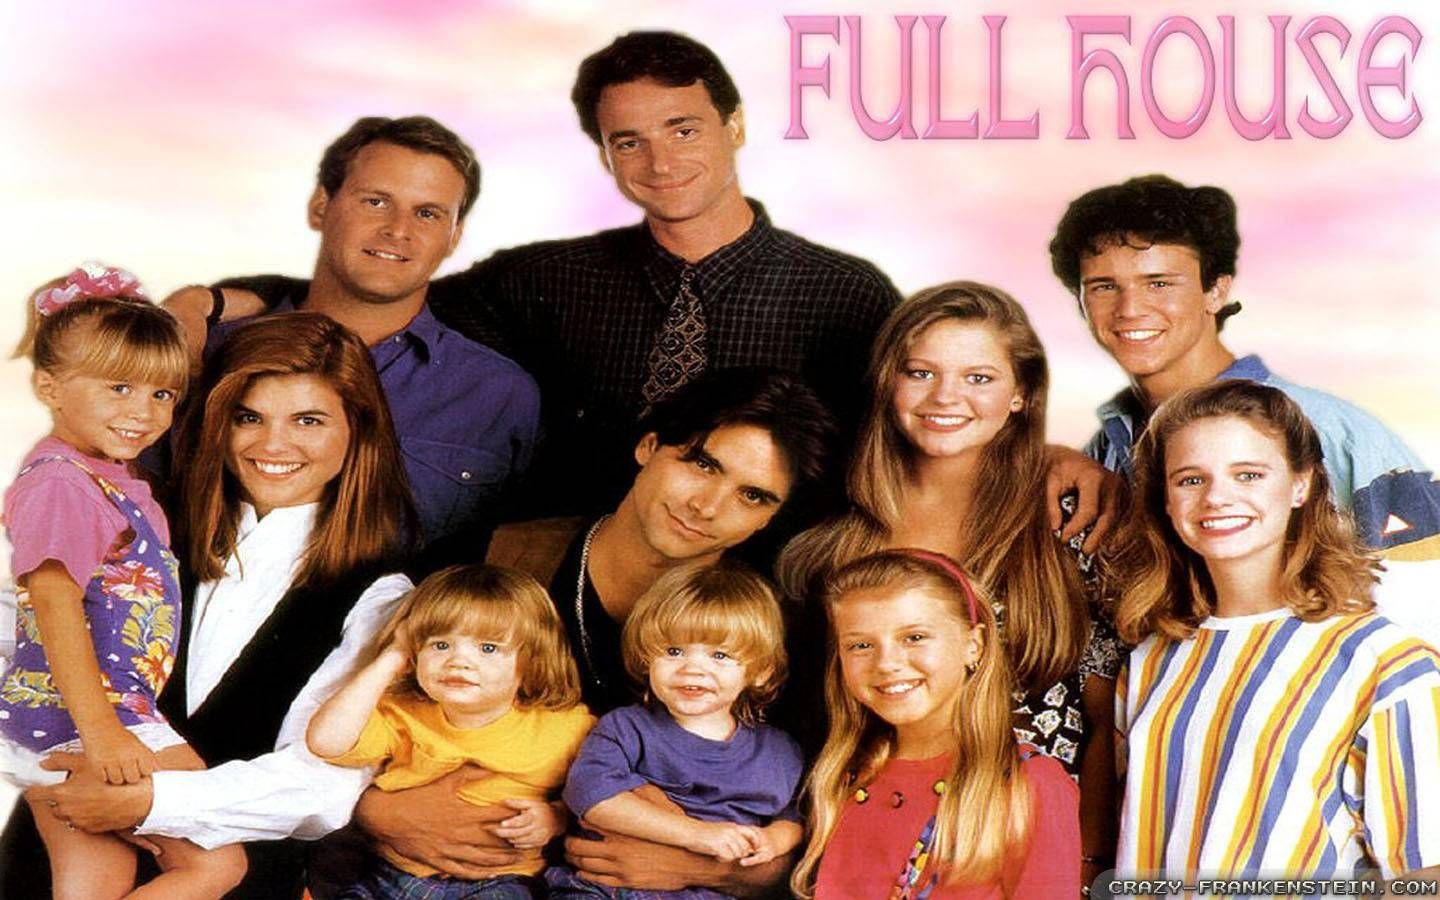 Will order full house family agree, this